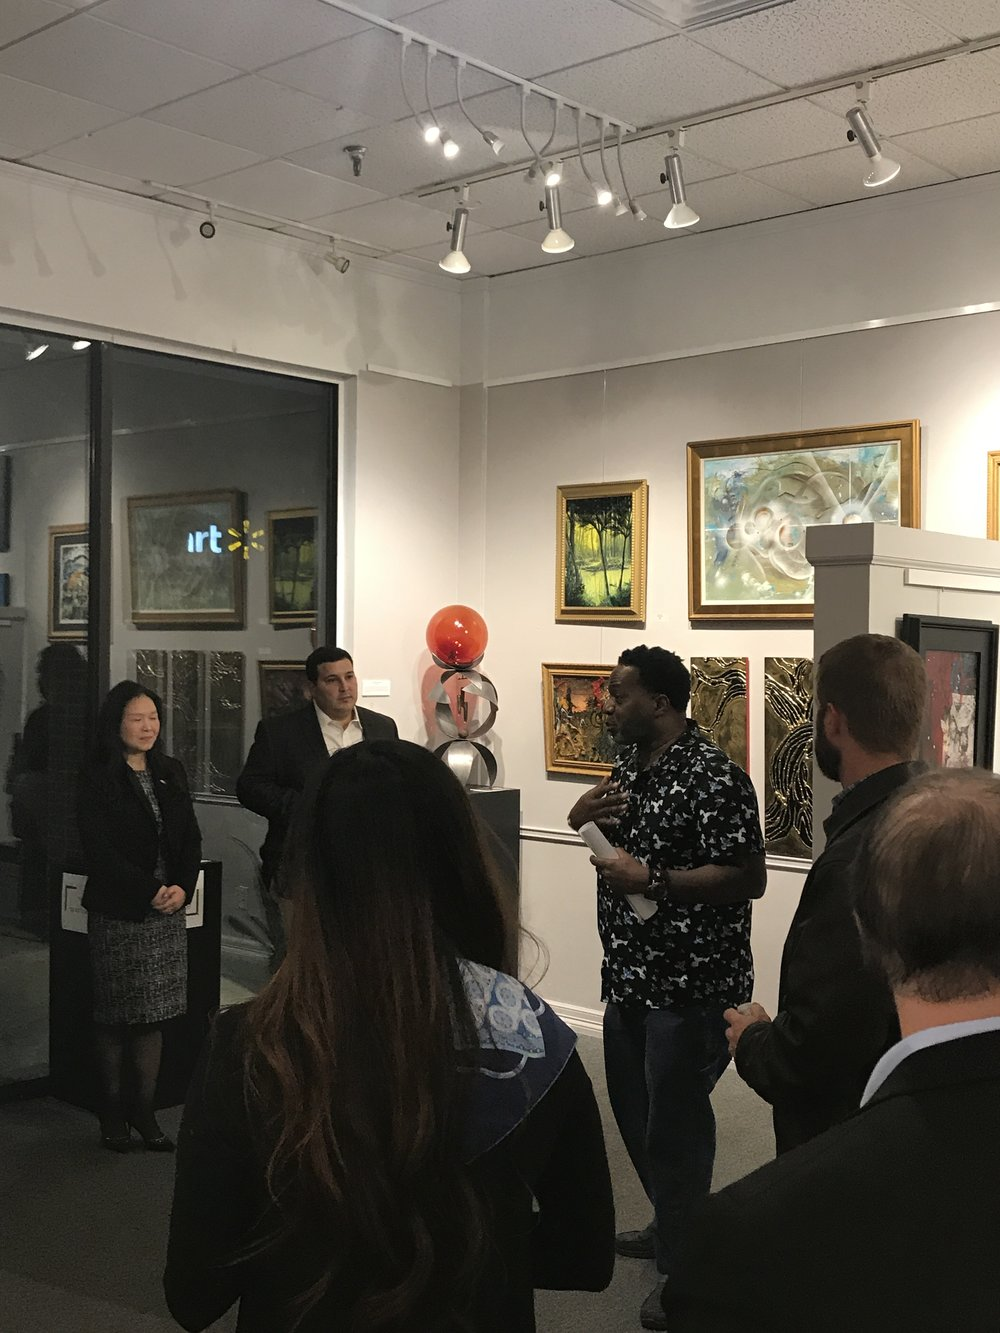 Military vet and artist Chris Van Loan, Sr. treat the holiday guests with an art tour of the current Austin ArtSpace exhibit.